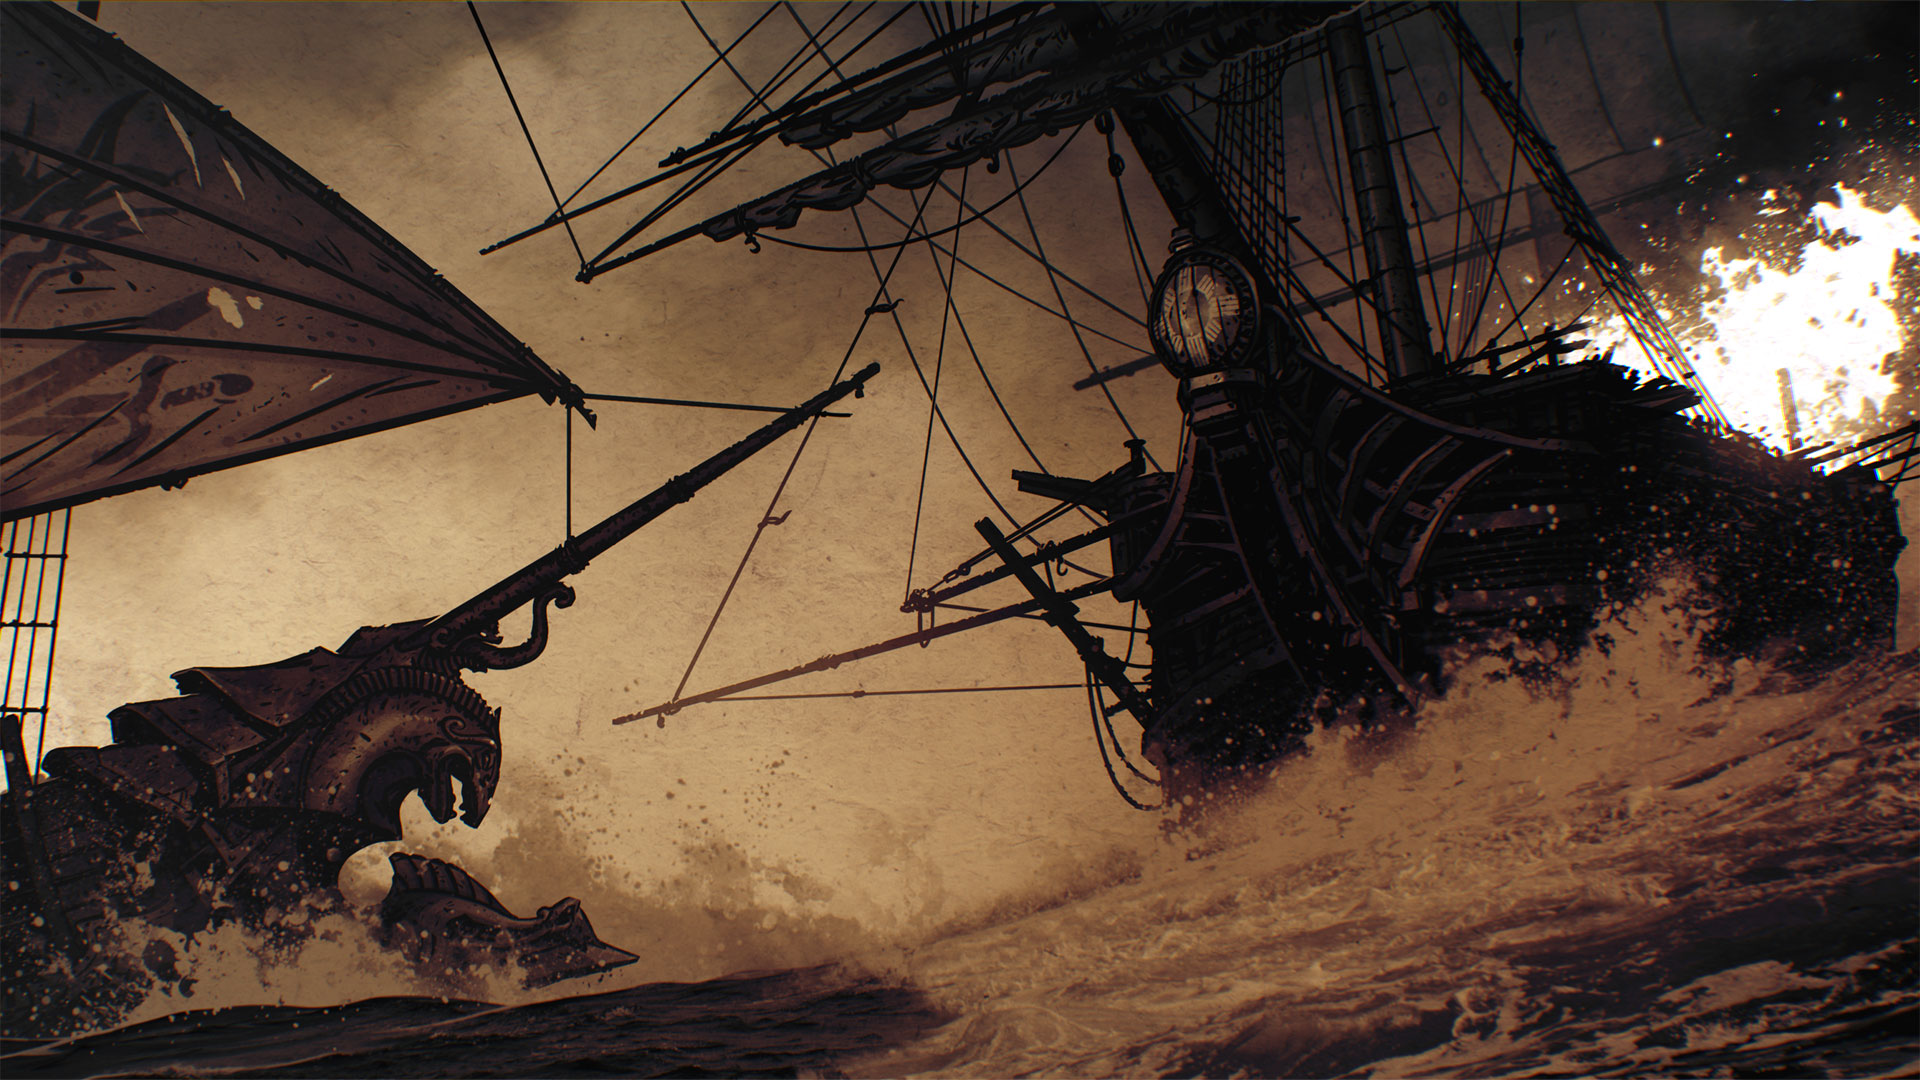 Sea Pirate Wallpapers | Best Wallpapers